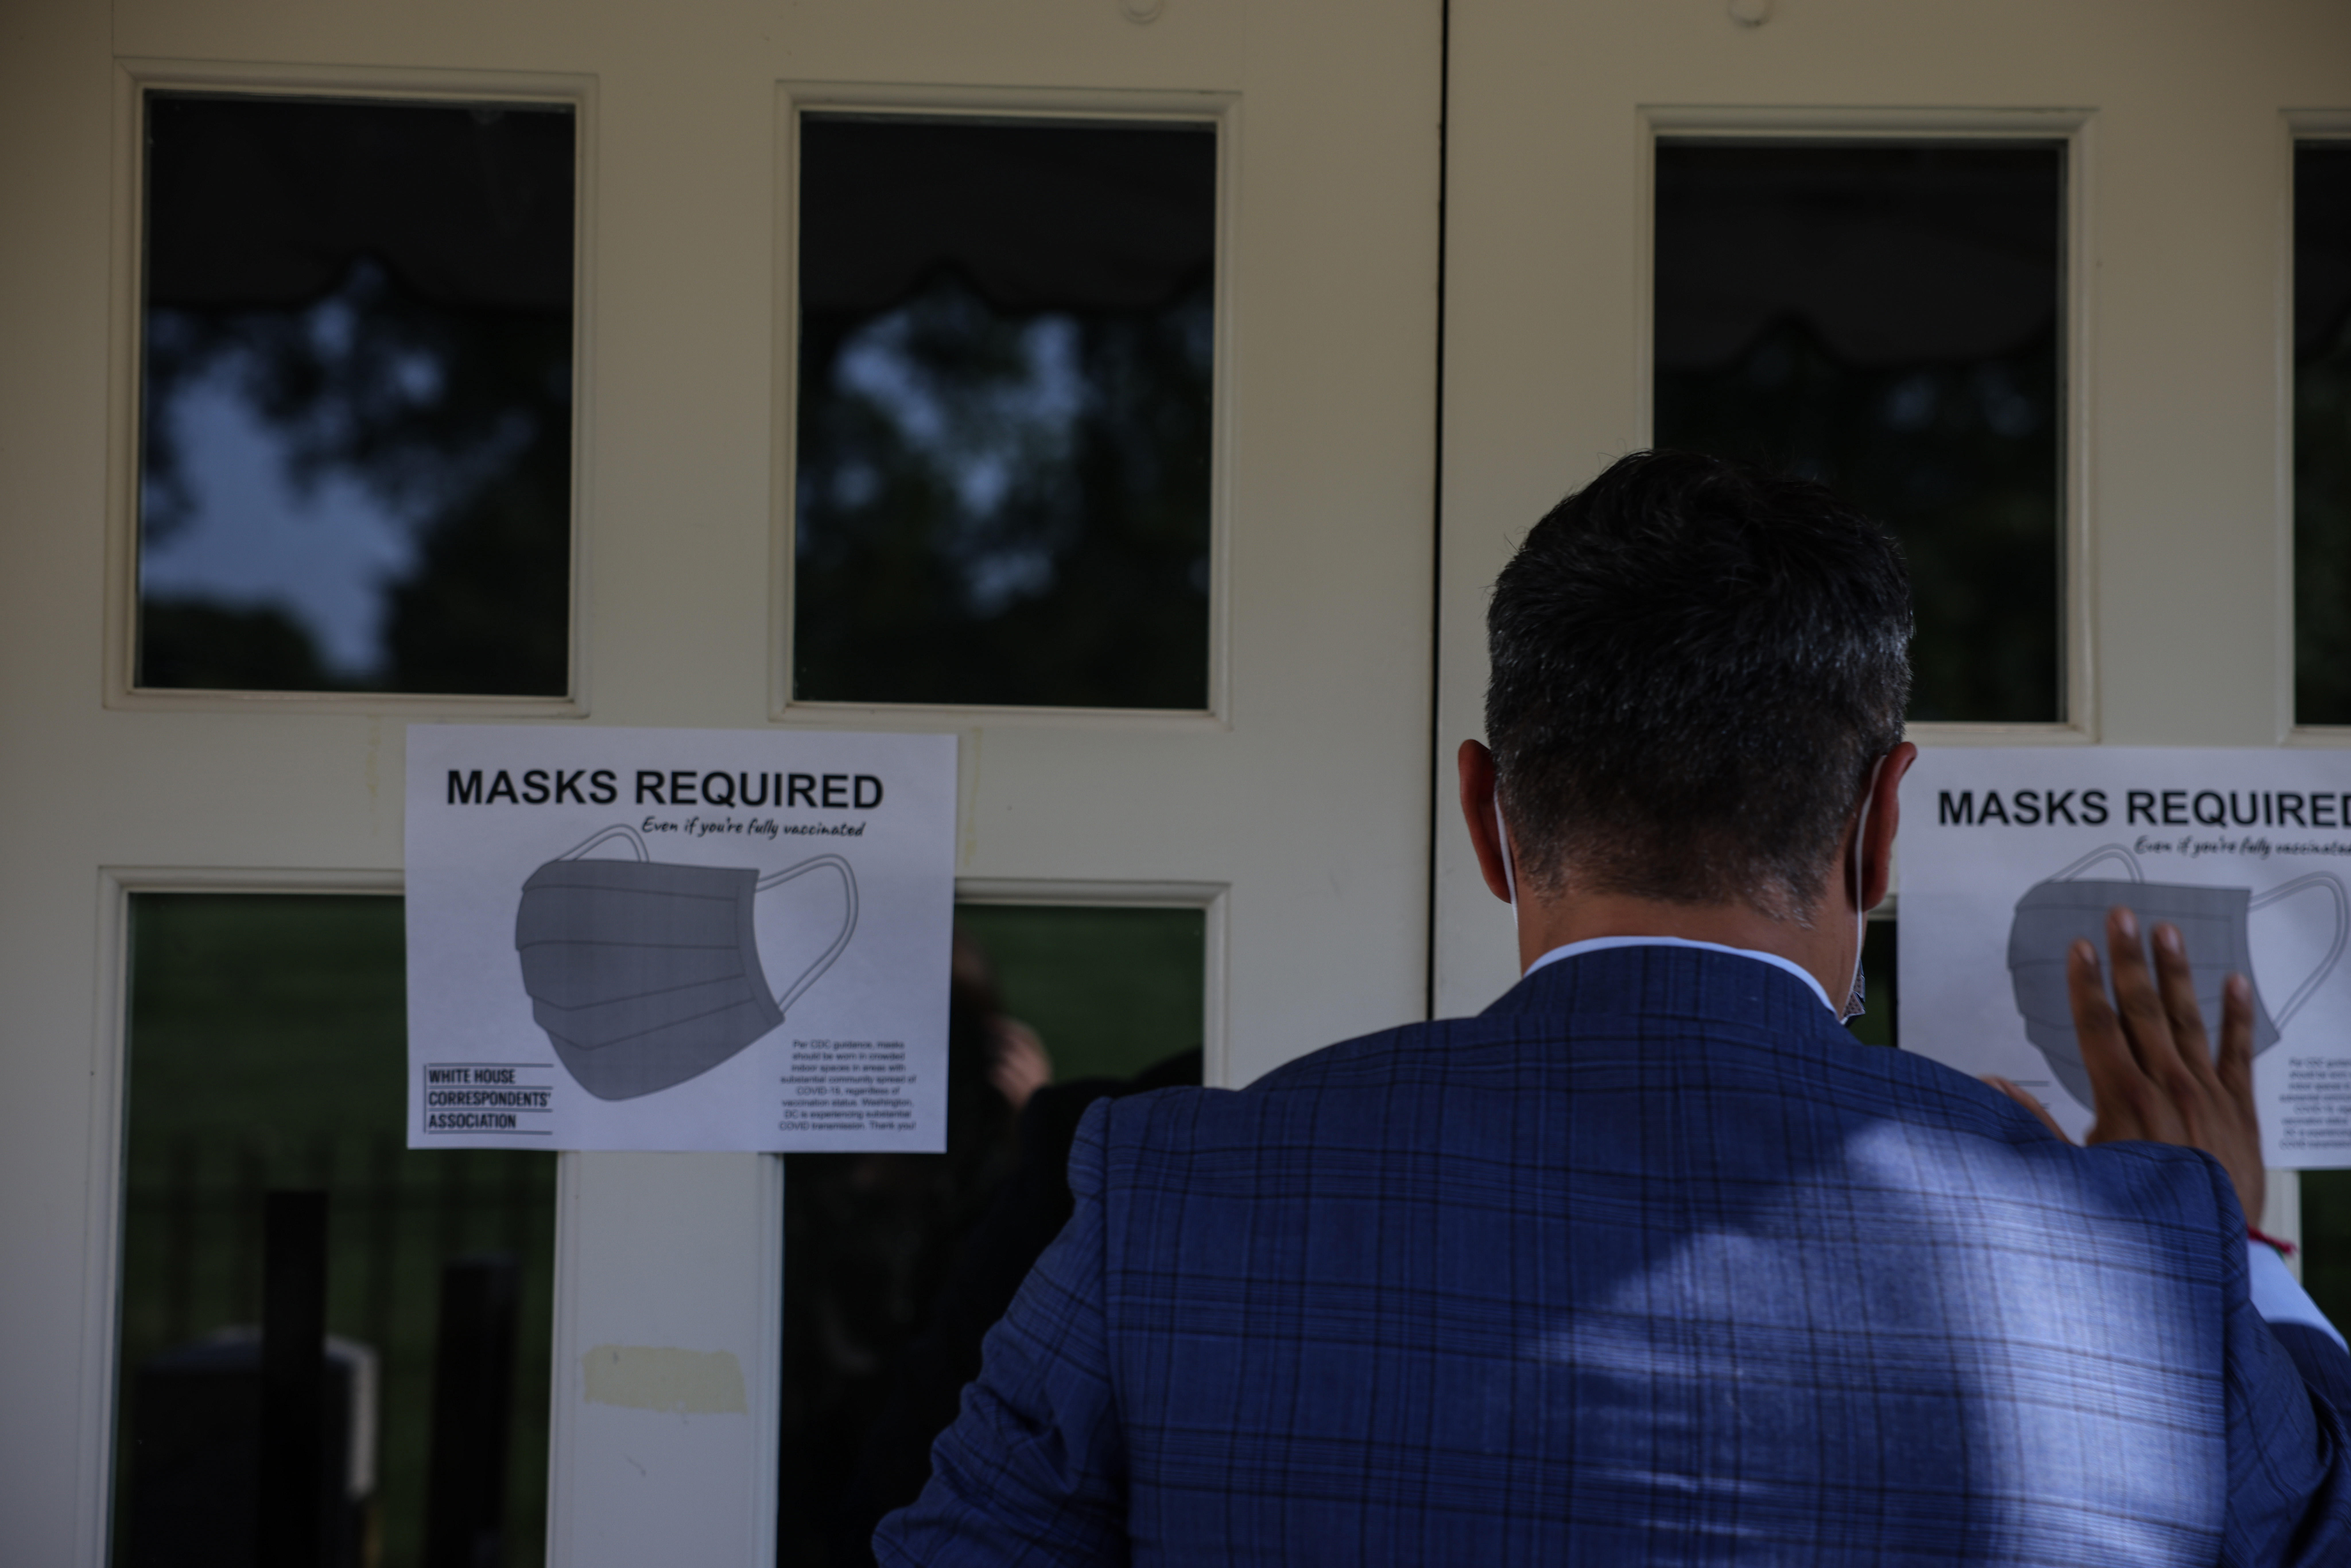 WASHINGTON, DC - JULY 27: Fin Gomez, a journalist with CBS News and White House Correspondents Association (WHCA) board member, replaces signs for mask-wearing guidance around the James Brady Press Briefing Room at the White House on July 27, 2021 in Washington, DC. The White House announced it was reimposing its mask mandate after the CDC advised that fully-vaccinated people should wear masks indoors in areas with possible high spread of COVID-19. (Photo by Anna Moneymaker/Getty Images)